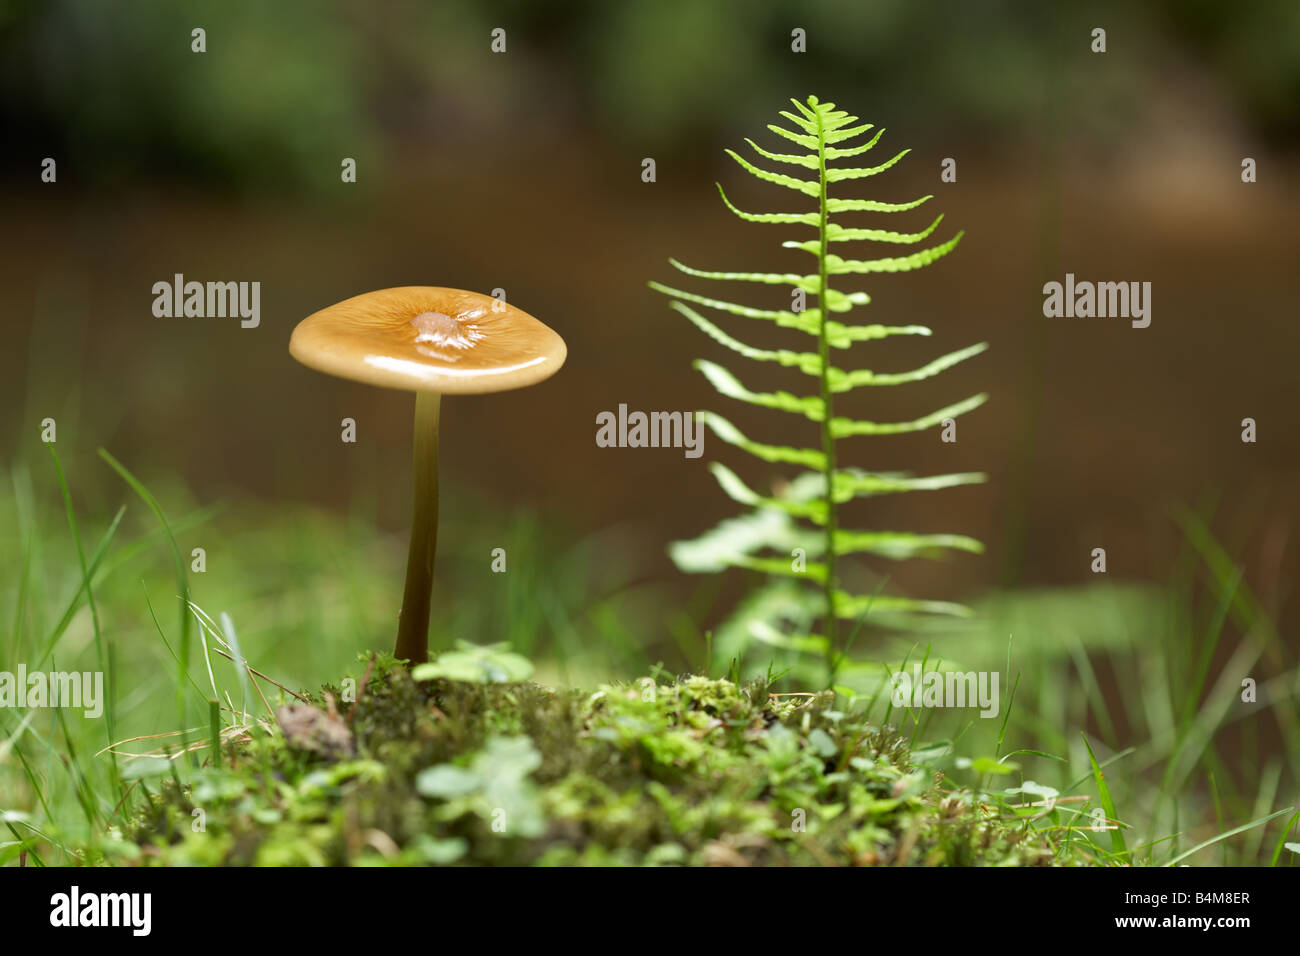 Toadstool found in the New Forest, Hampshire, England, UK. - Stock Image